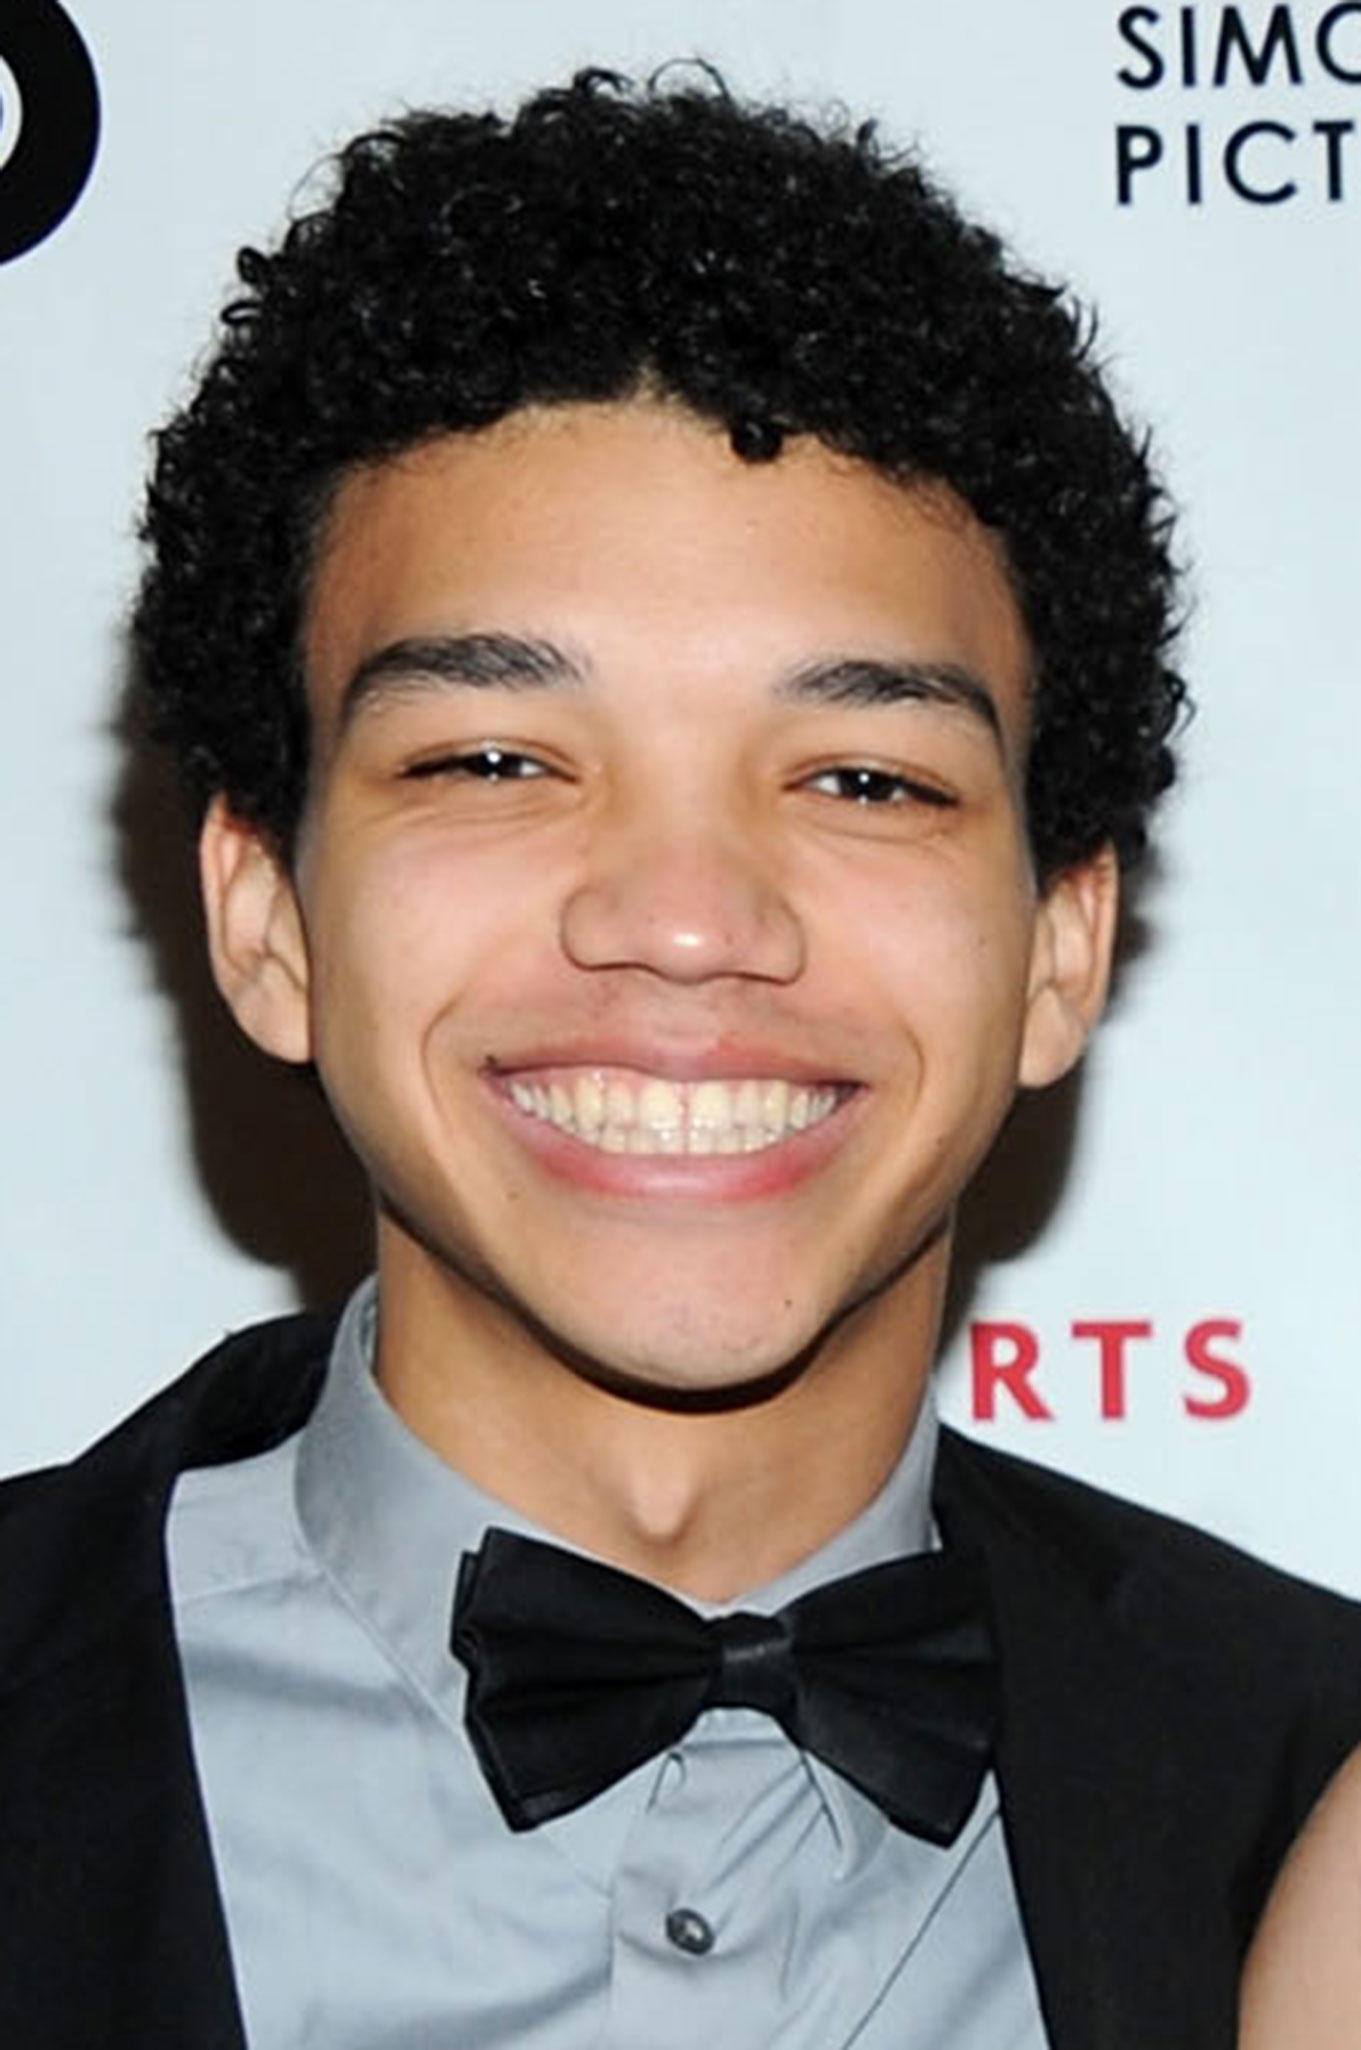 justice smith twitterjustice smith tumblr, justice smith mma, justice smith fighter, justice smith french, justice smith wwe, justice smith will smith, justice smith, justice smith actor, justice smith age, justice smith paper towns, justice smith instagram, justice smith wrestler, justice smith height, justice smith haven mall, justice smith parents, justice smith actor age, justice smith ator, justice smith twitter, justice smith football, justice smith paper towns age